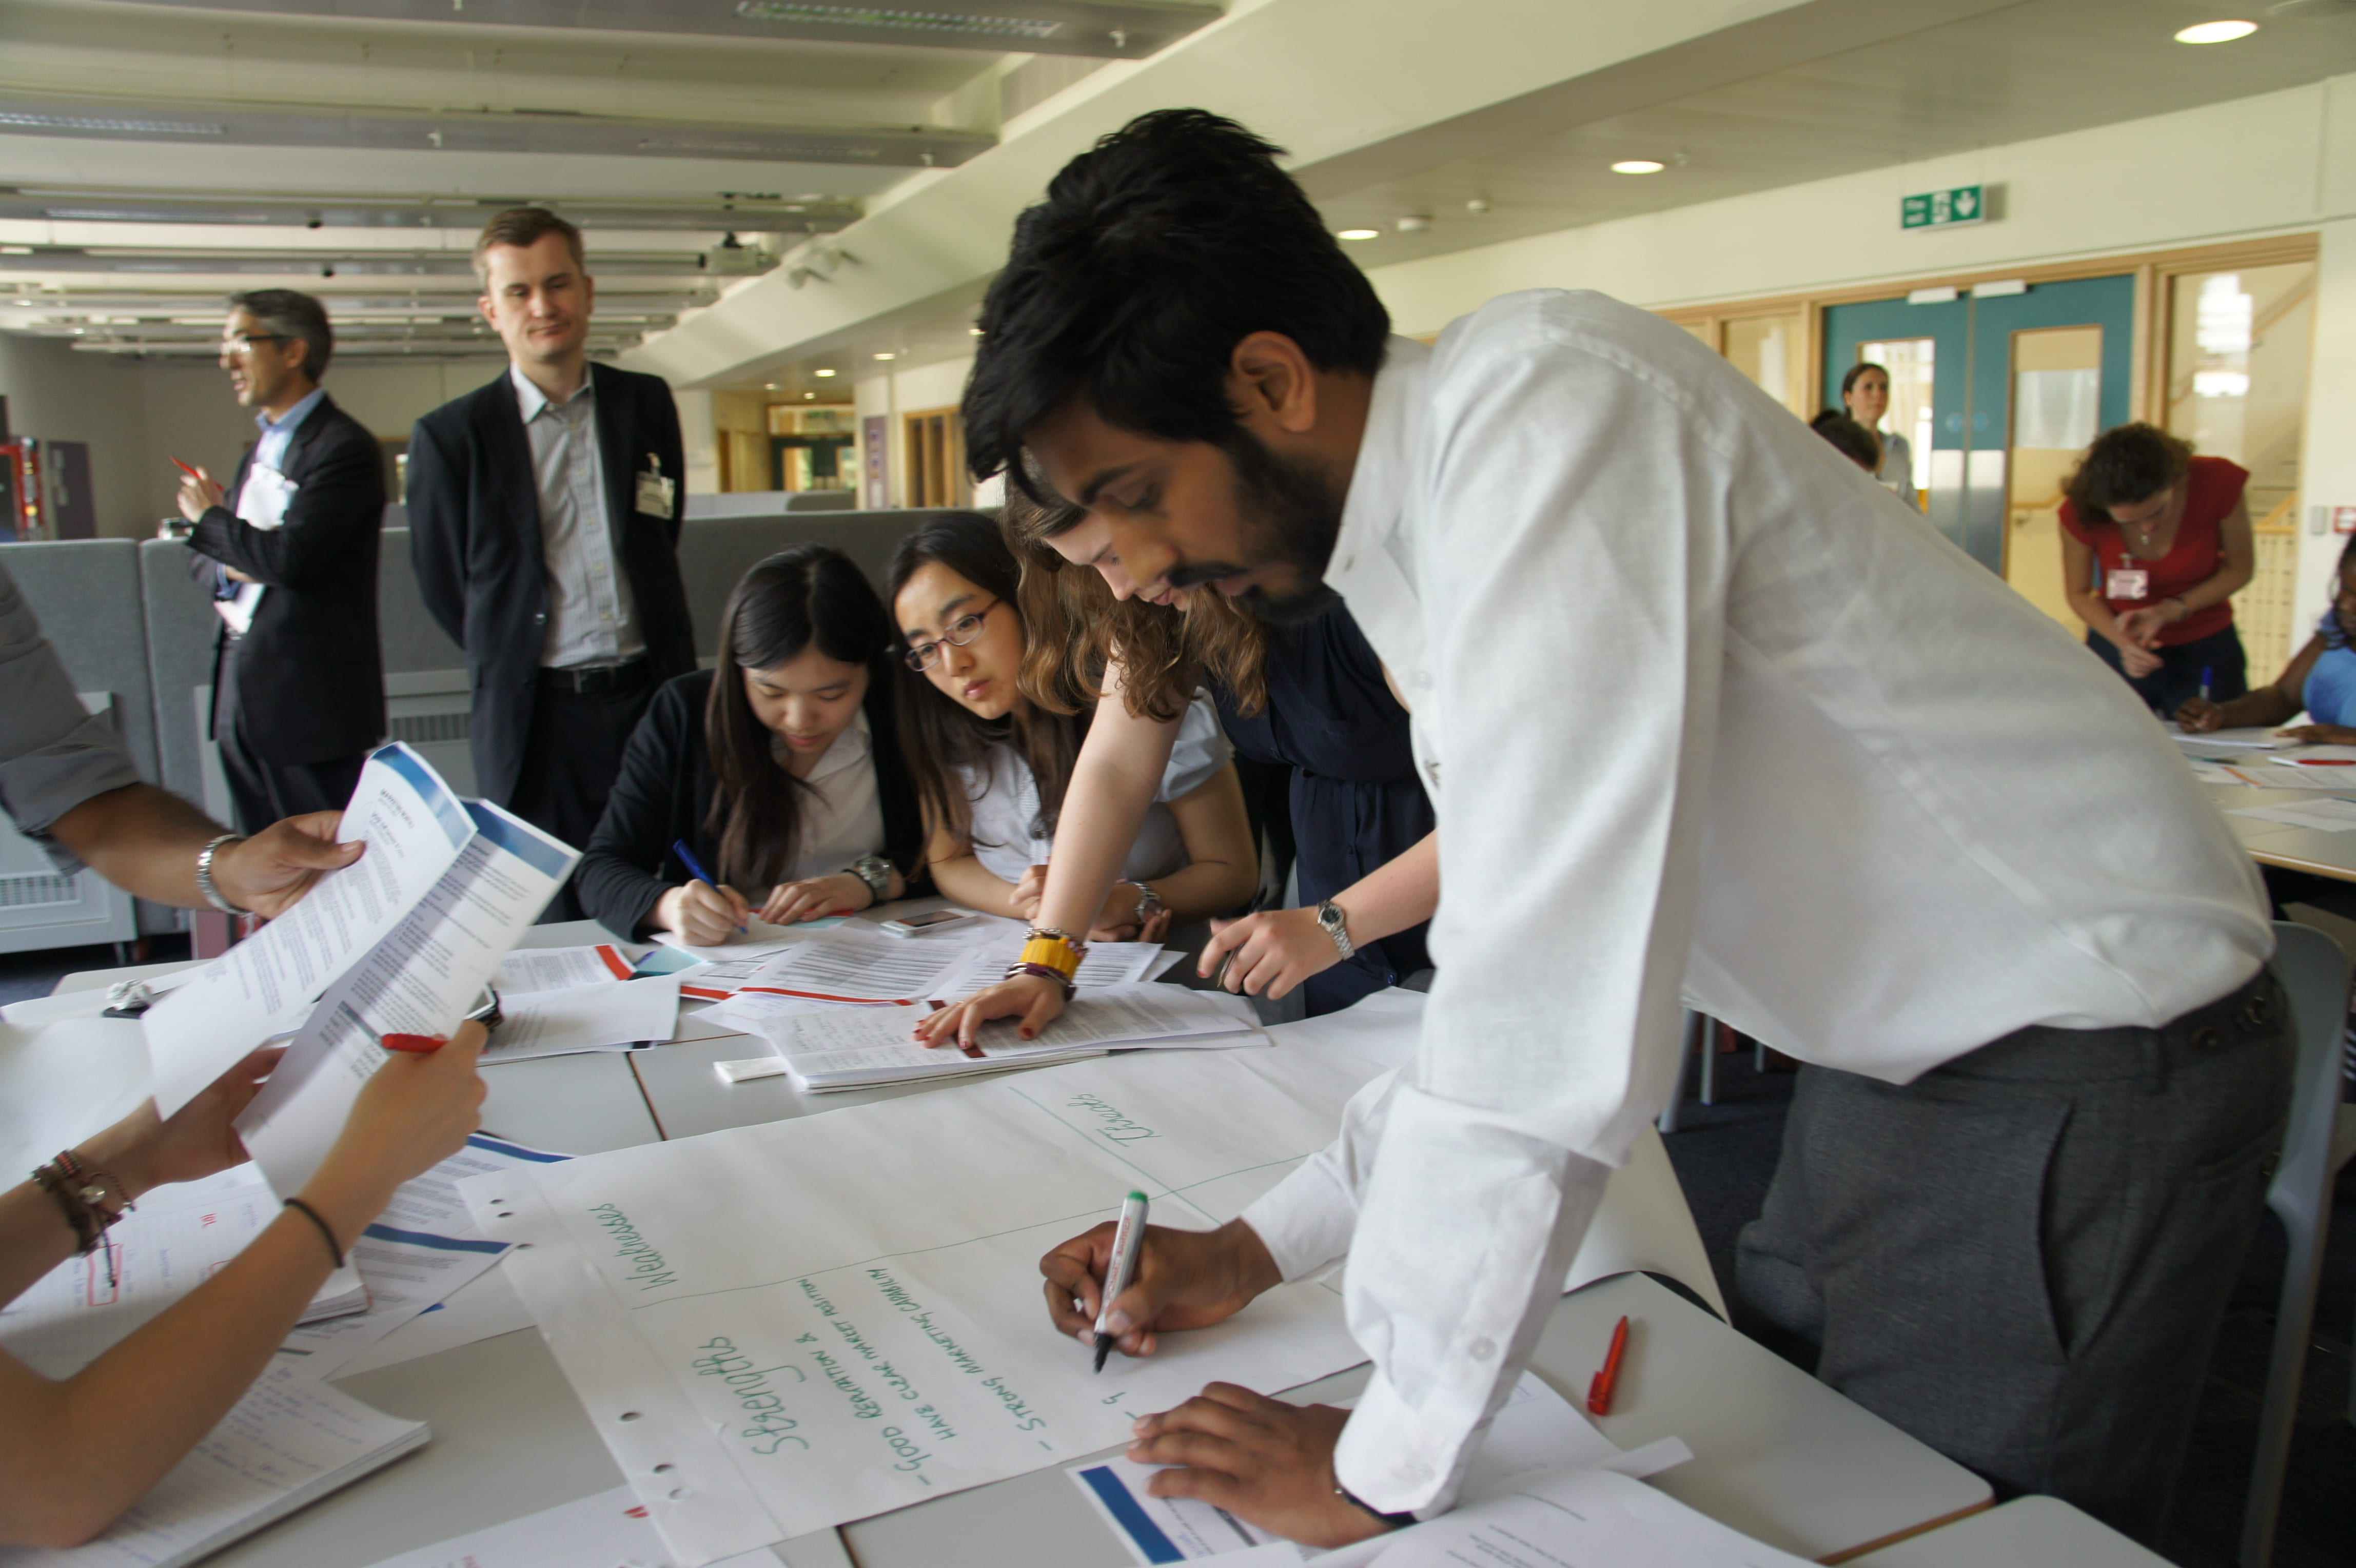 work experience ucl discover ucl in addition to summer jobs there are other ways of gaining useful work experience you could try obtaining some work experience in the sector you are